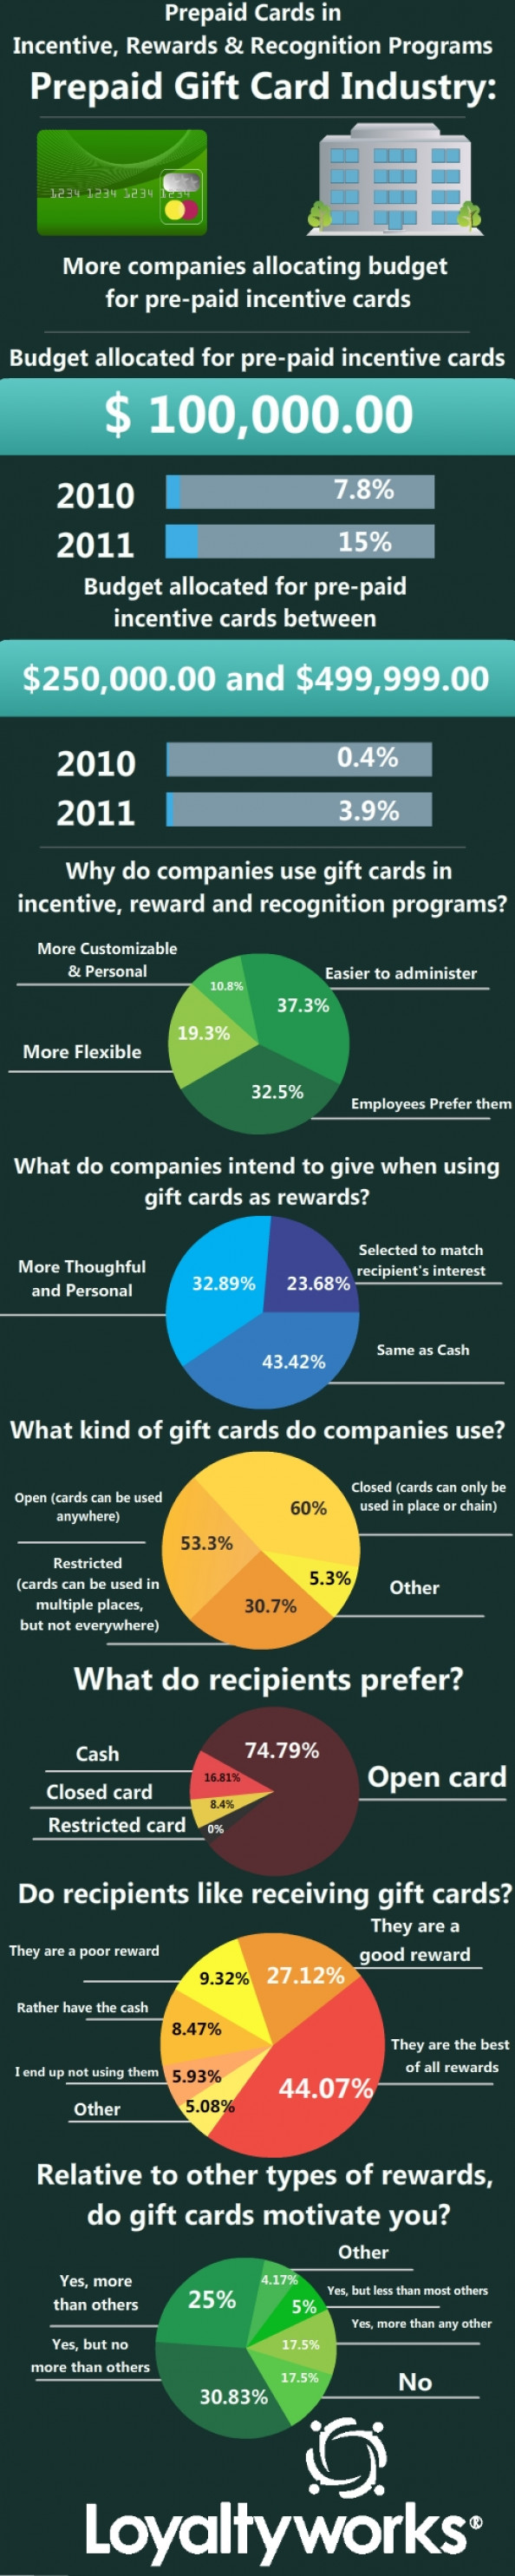 Pre paid card in incentive, reward and recognition programs Infographic